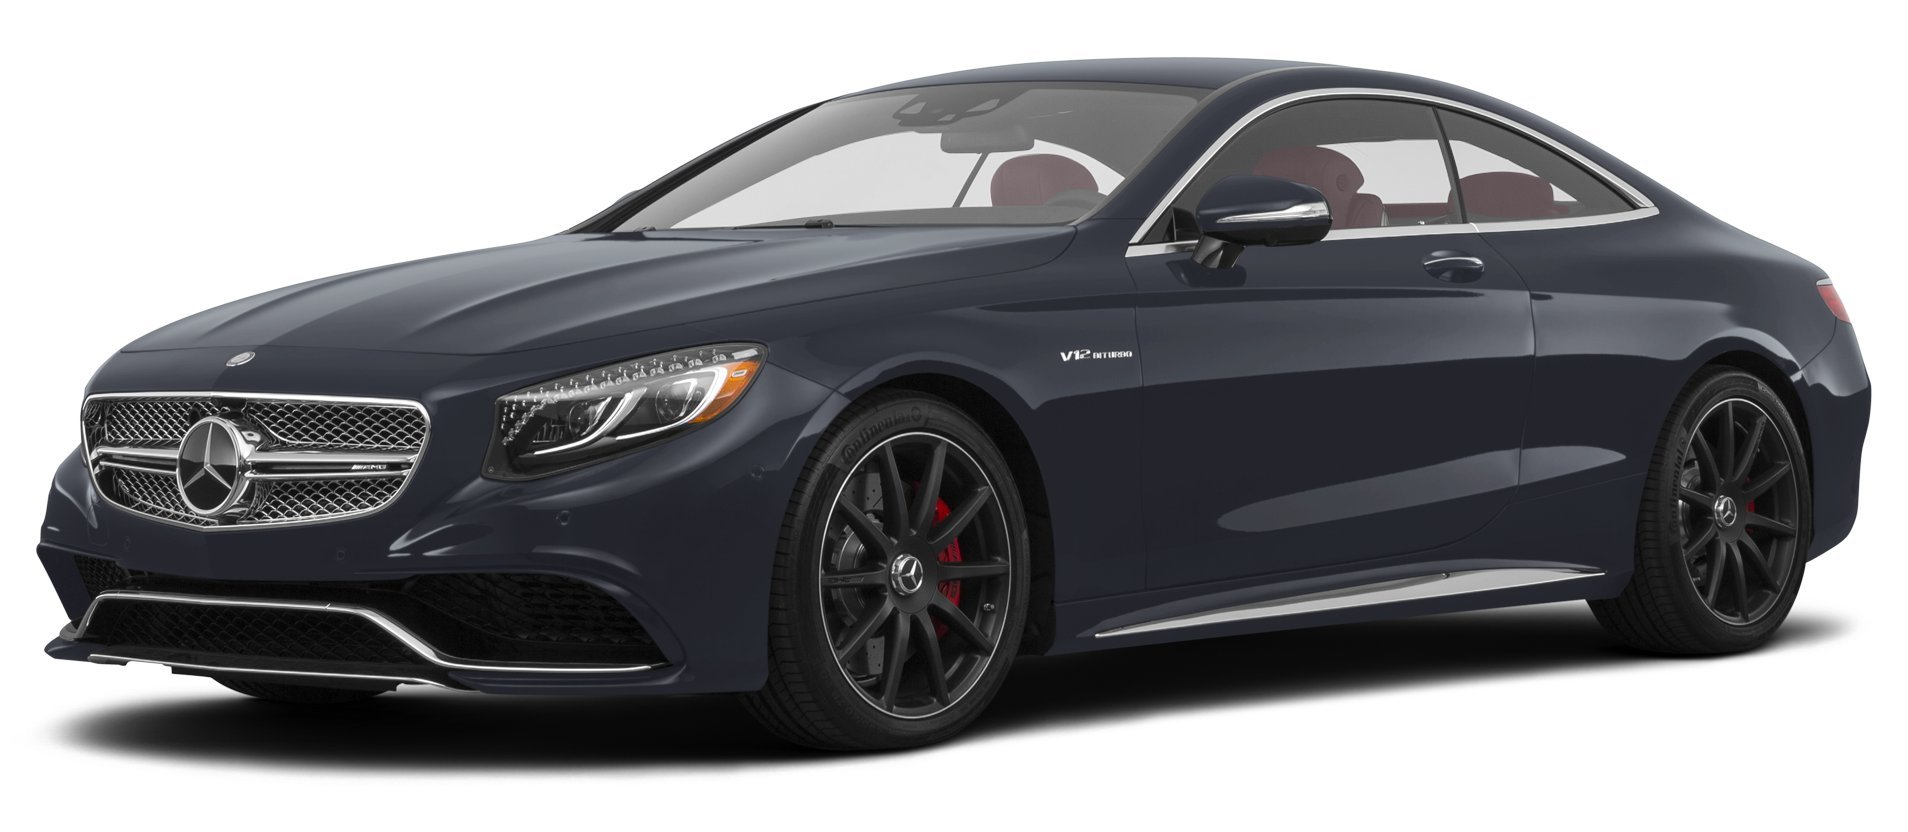 2016 mercedes benz s65 amg reviews images and specs vehicles. Black Bedroom Furniture Sets. Home Design Ideas